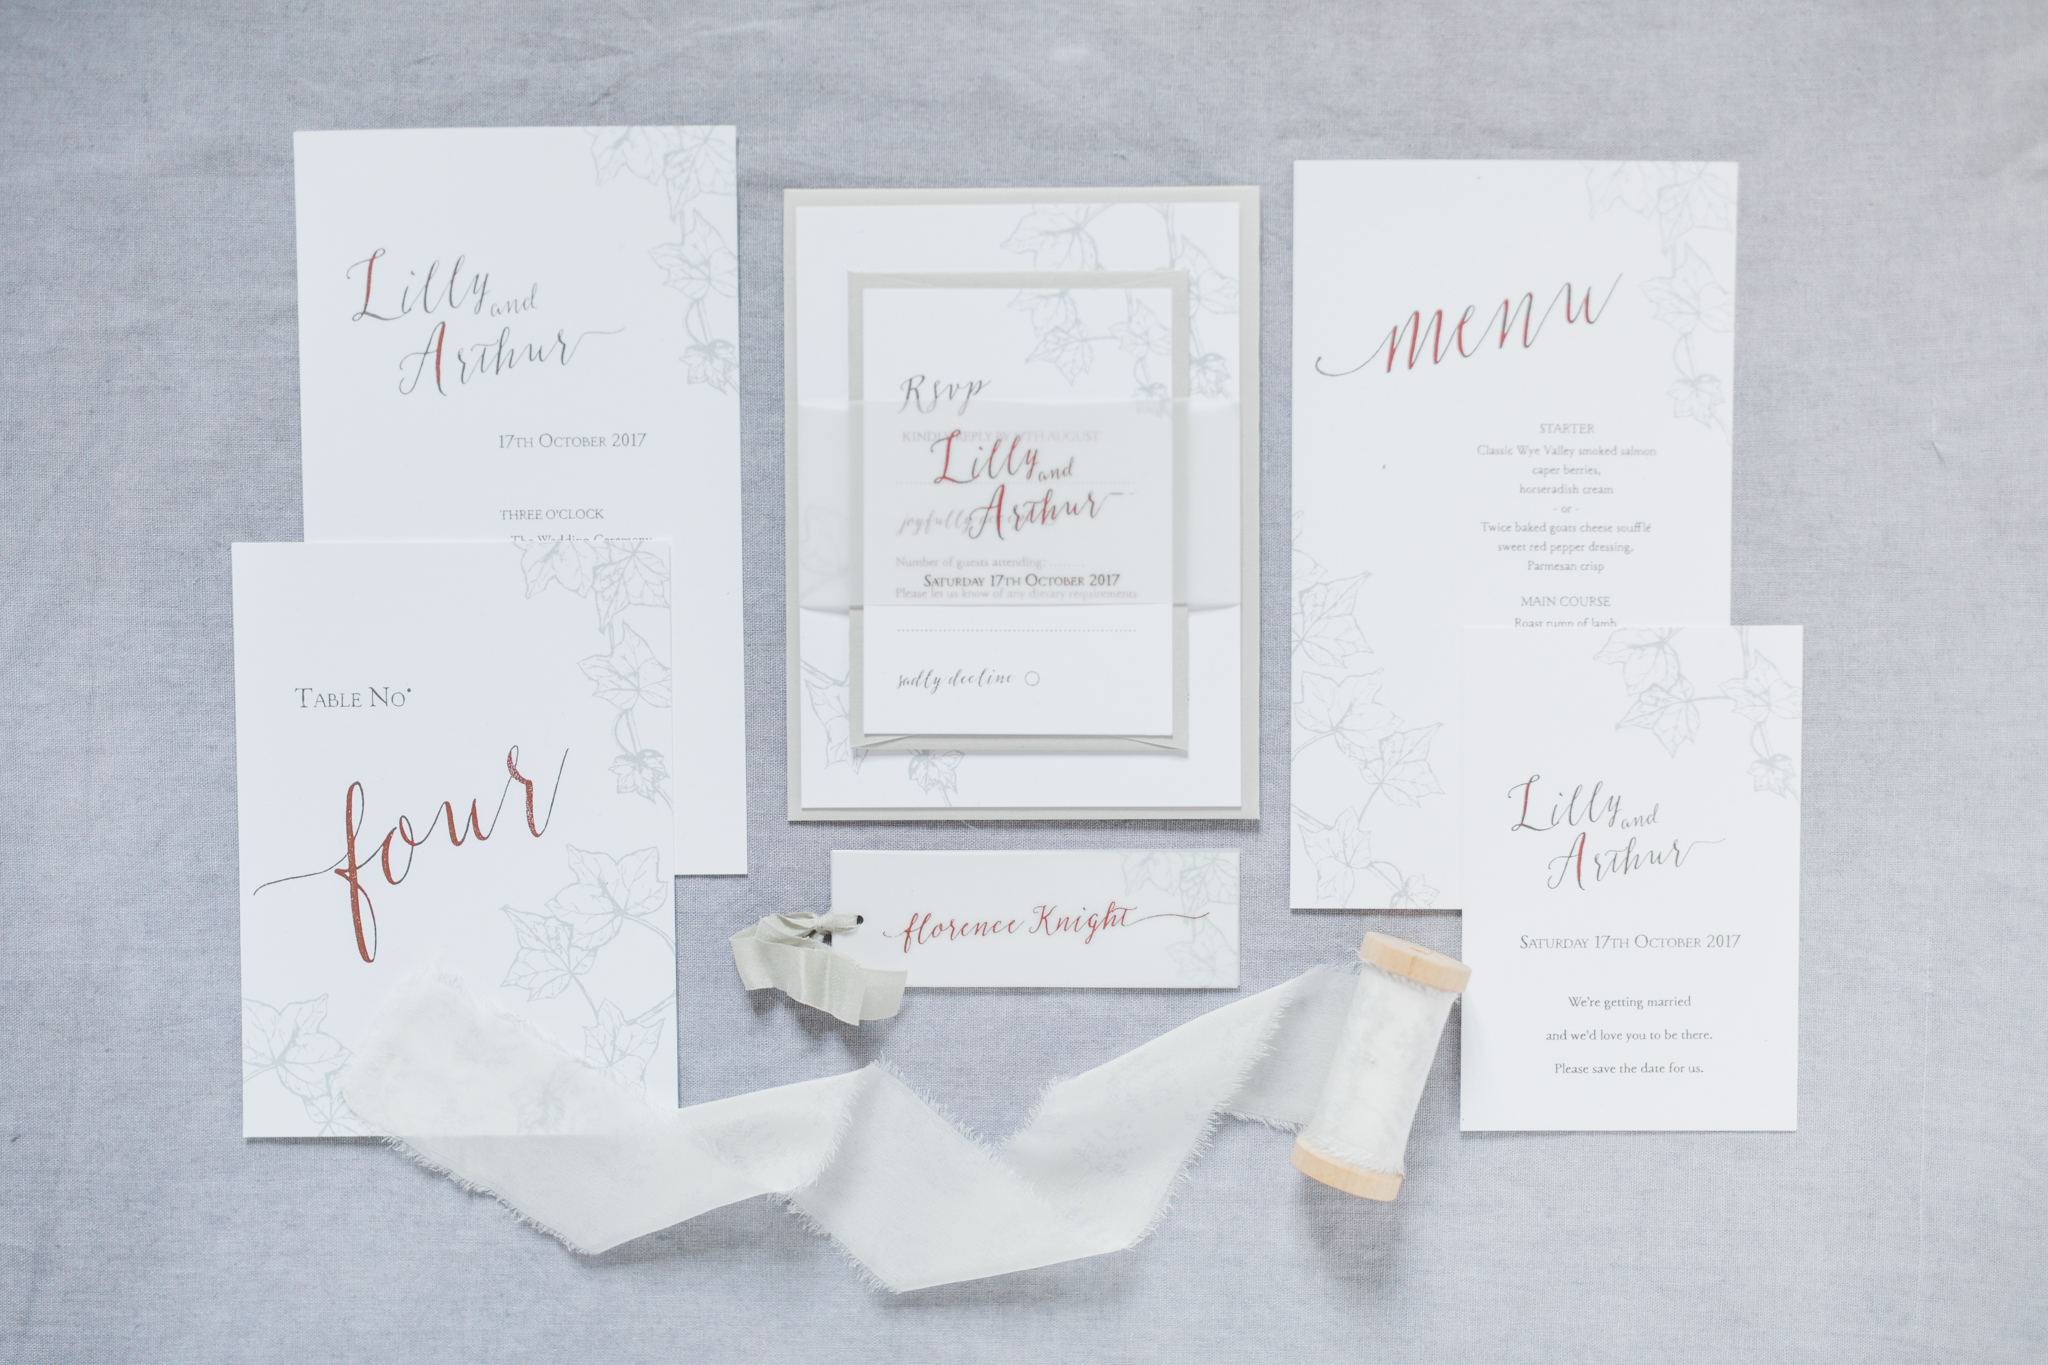 Inkflower Press Ivy silkscreen printed wedding stationery - Copper Slate